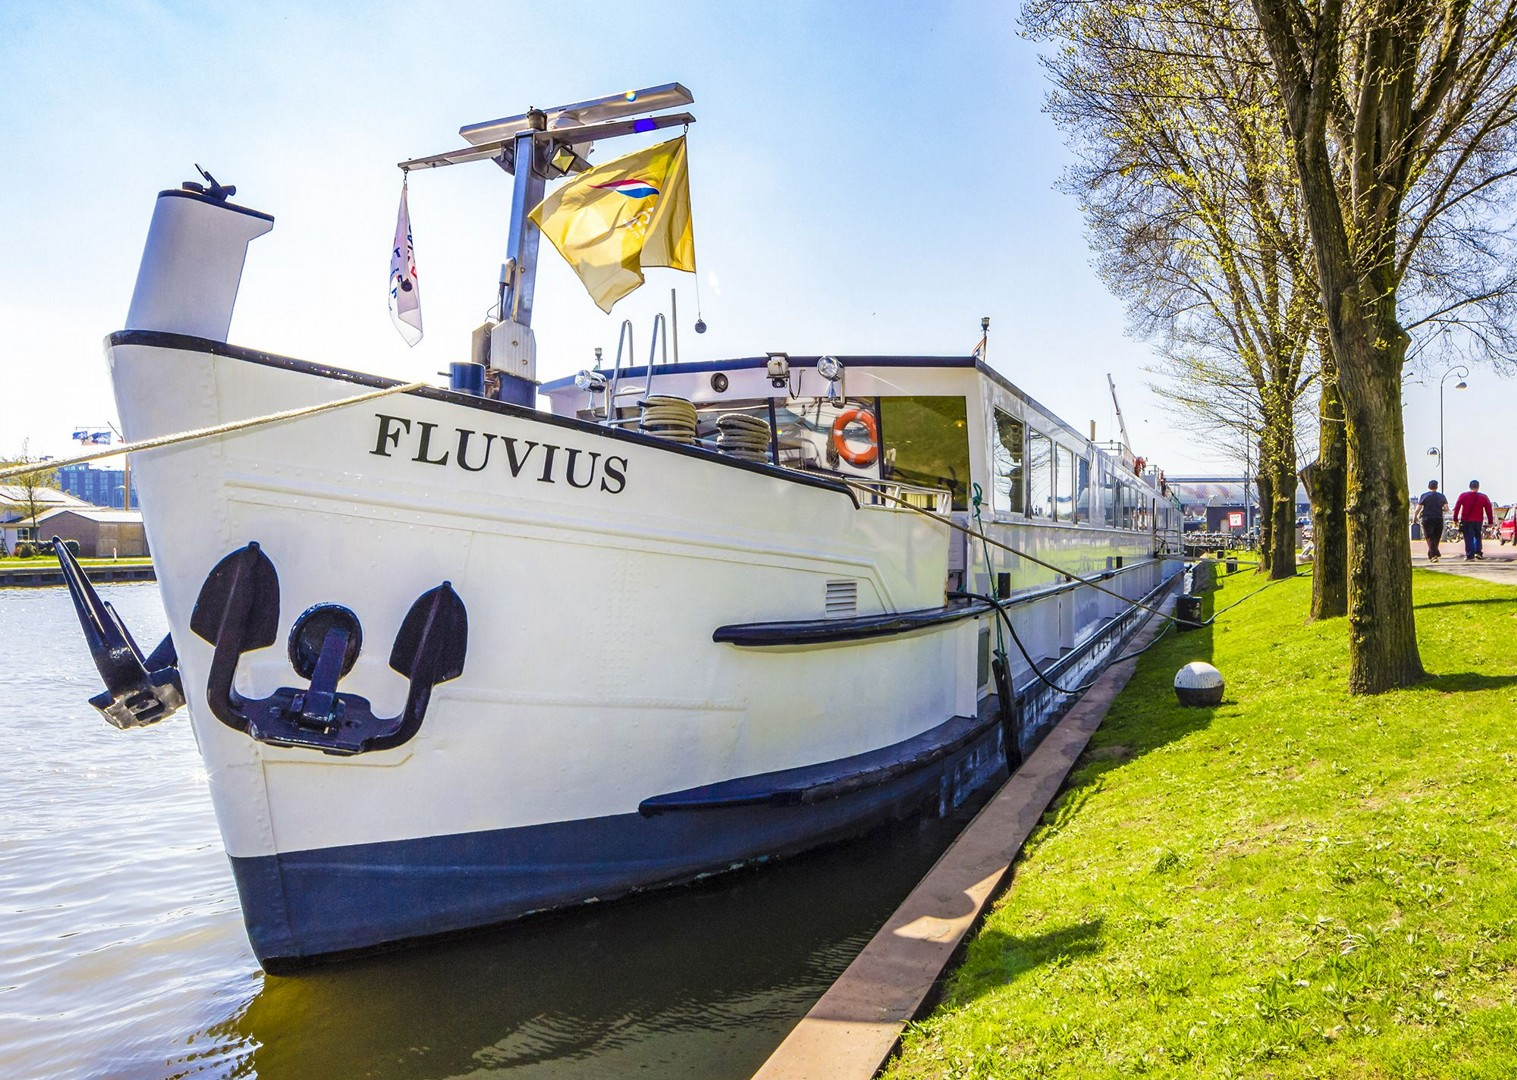 bike-and-barge-boat-tour-fluvius-culture-comfort-holland-and-belgium.jpg - Holland and Belgium - Bruges to Amsterdam - Bike and Barge Holiday - Leisure Cycling